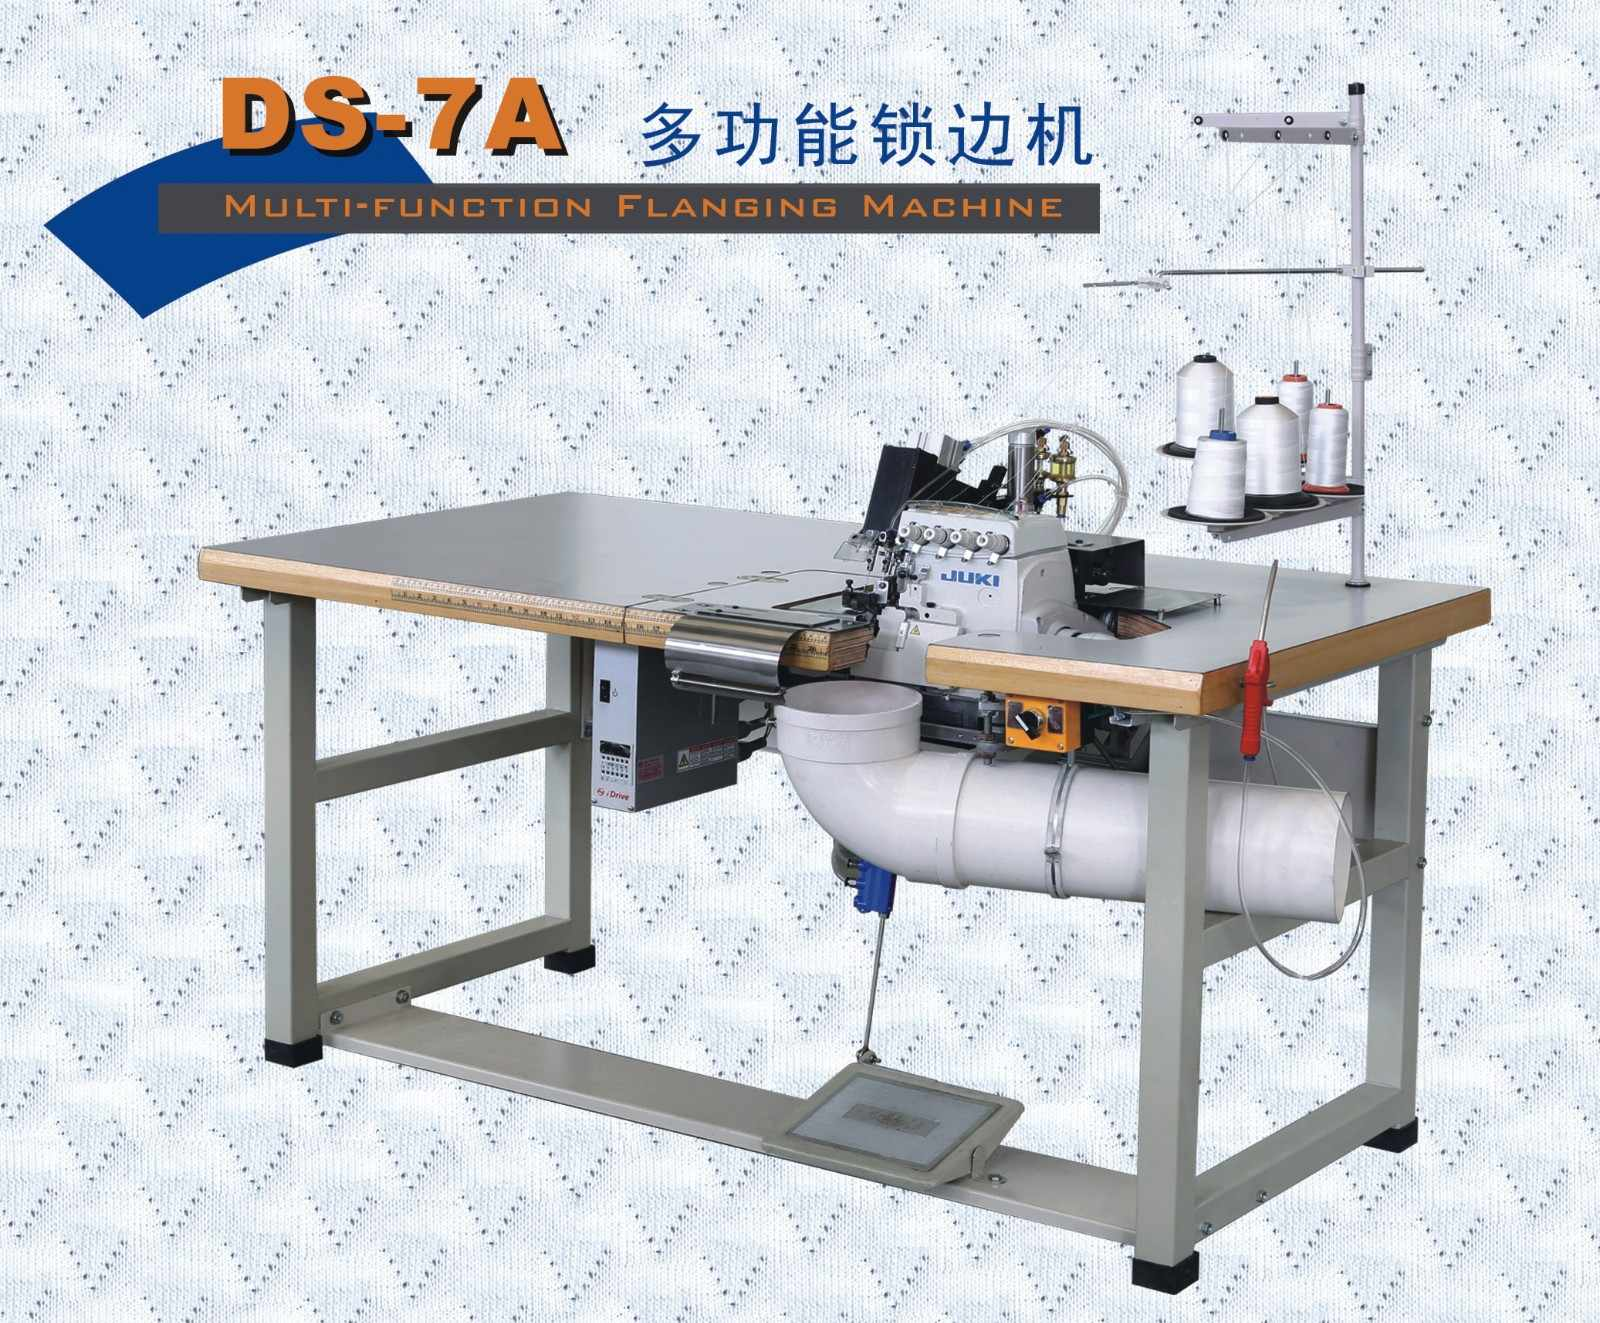 Double Sewing Heads Flanging Machine mattress machine double flanging